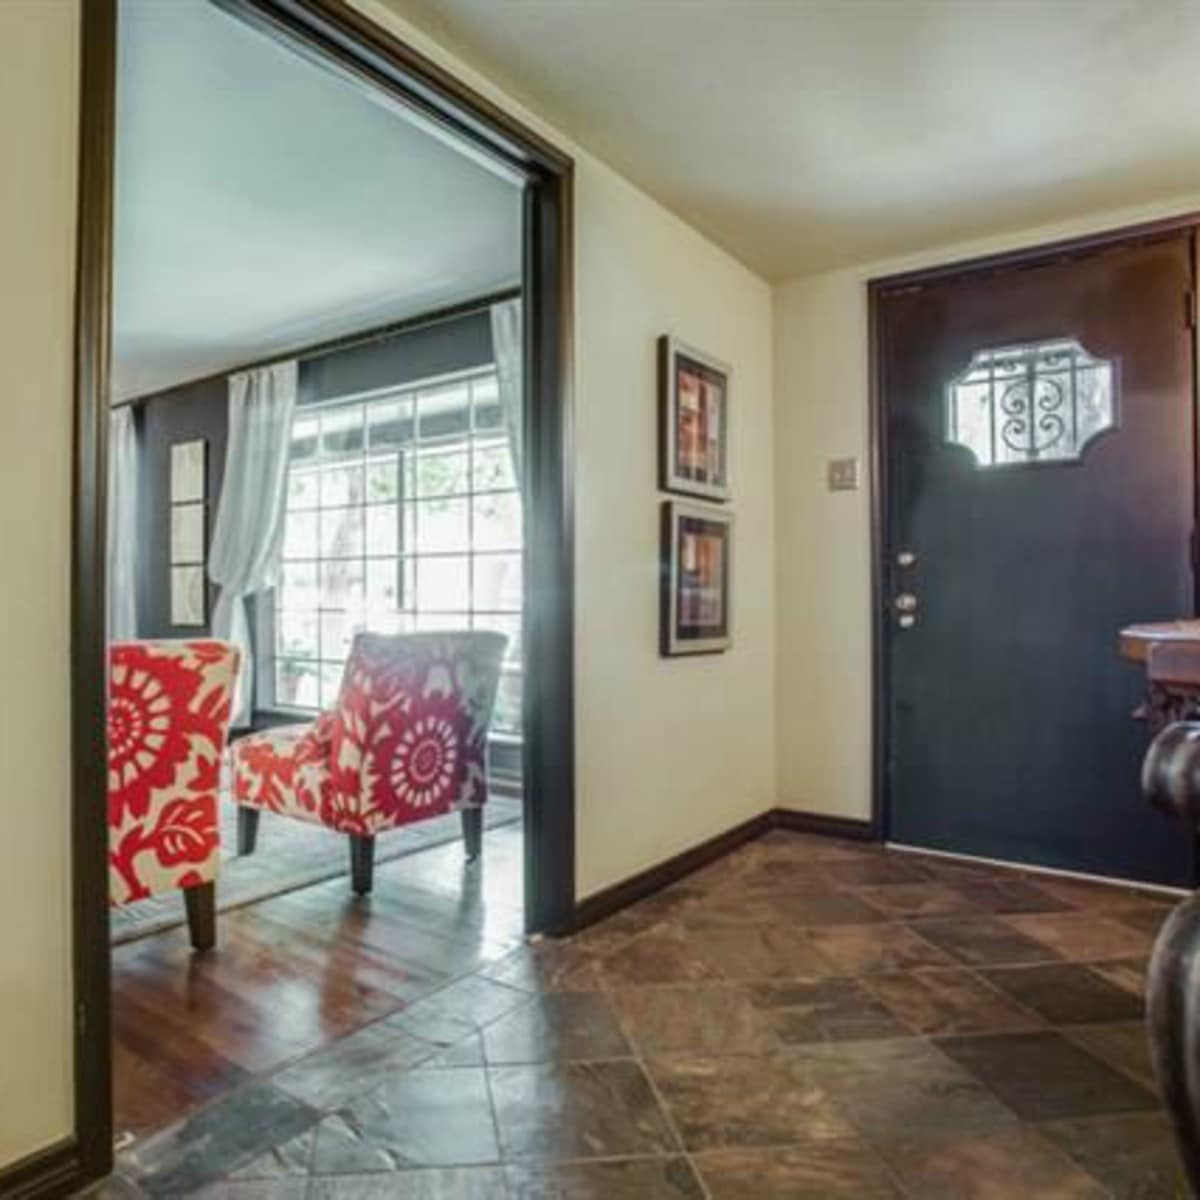 8917 Sweetwater Dr. house for sale in Dallas